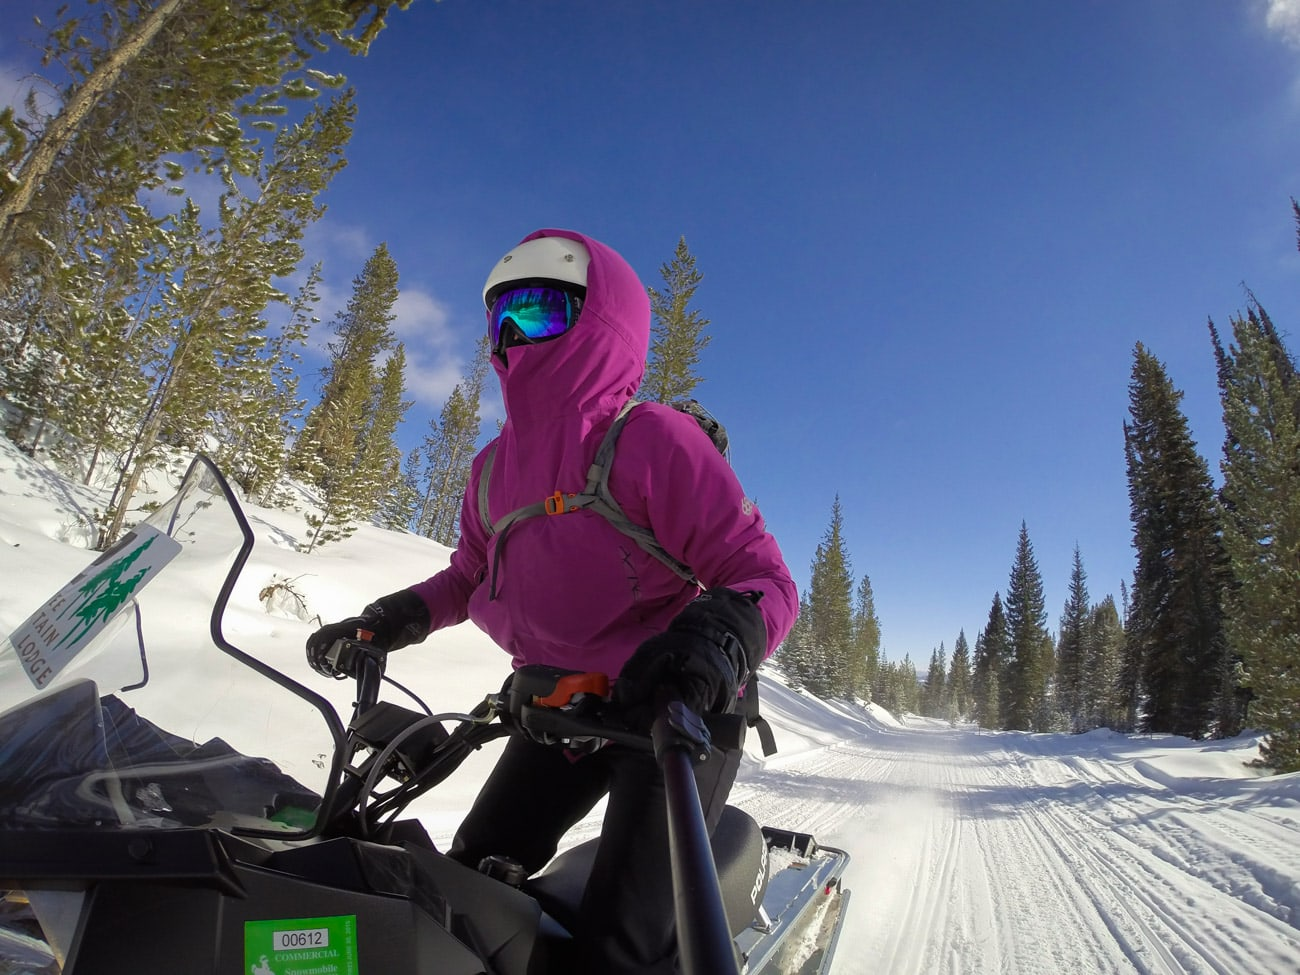 Snowmobiling in Wyoming's Togwotee National Forest // Learn my favorite GoPro tips and tricks to improve your travel photography.